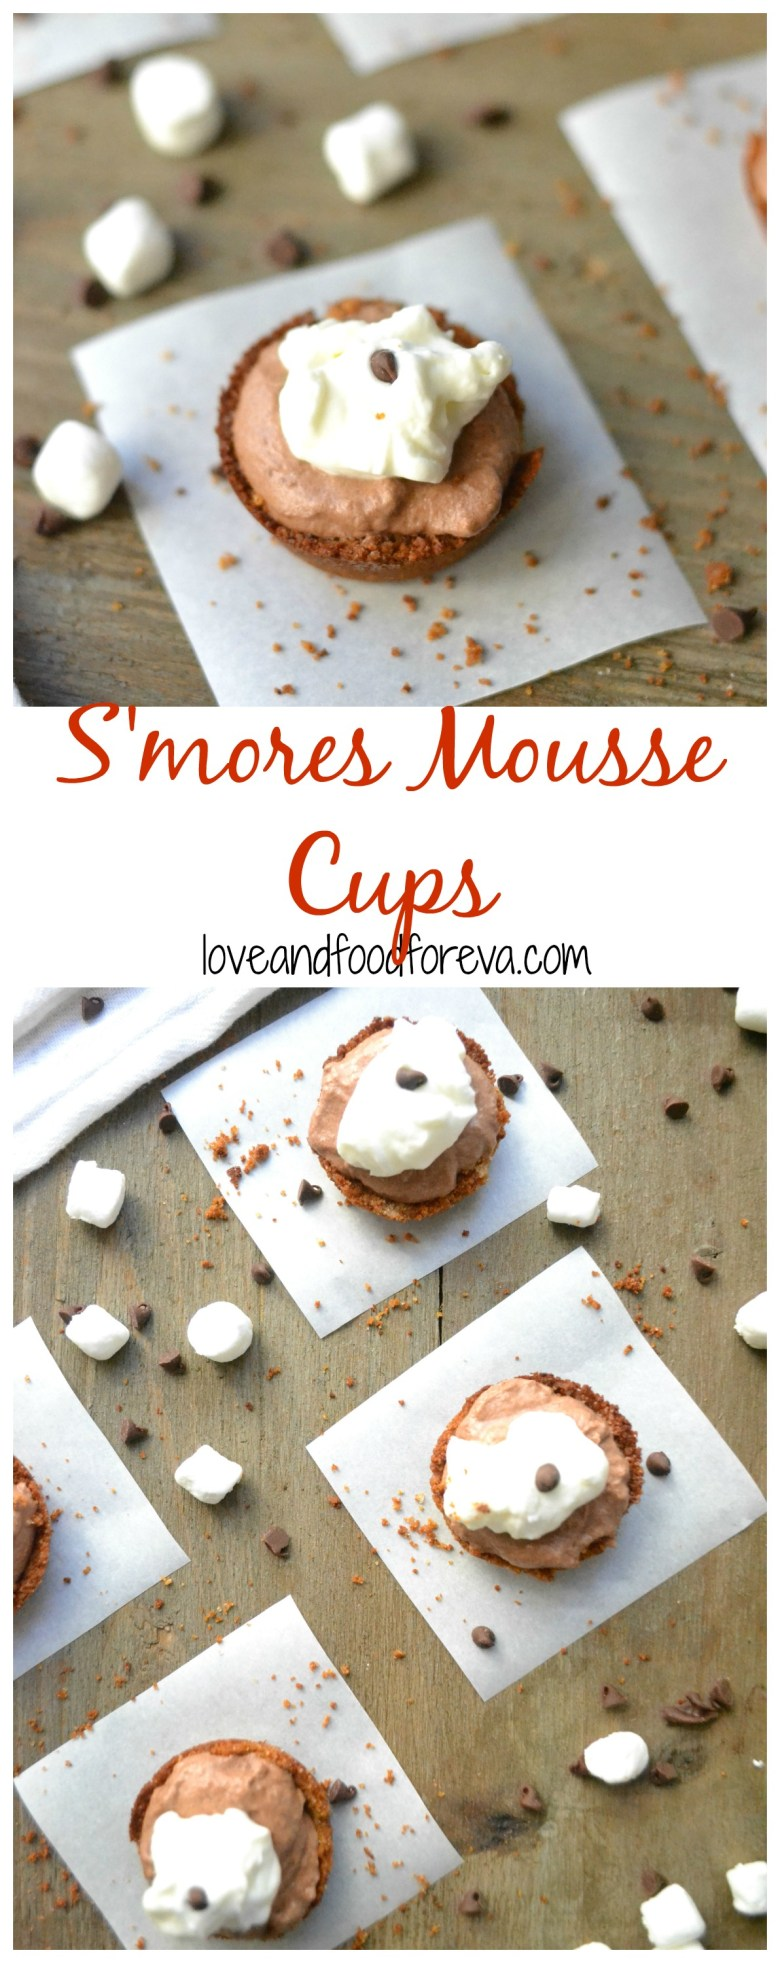 S'mores Mousse Cups are a fun, new way to enjoy a classic childhood favorite!